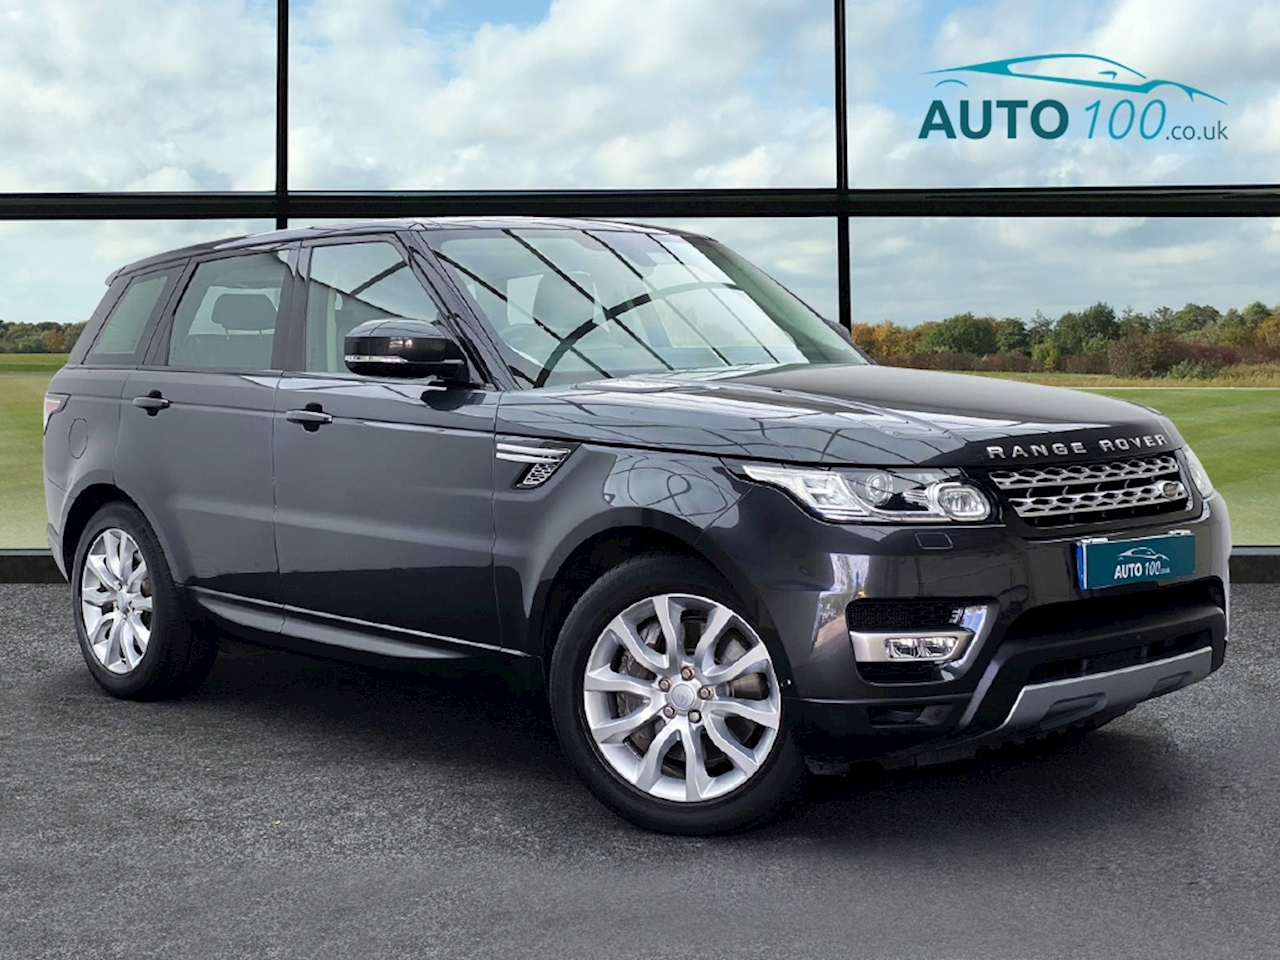 Range Rover Sport HSE SUV 3.0 Automatic Diesel